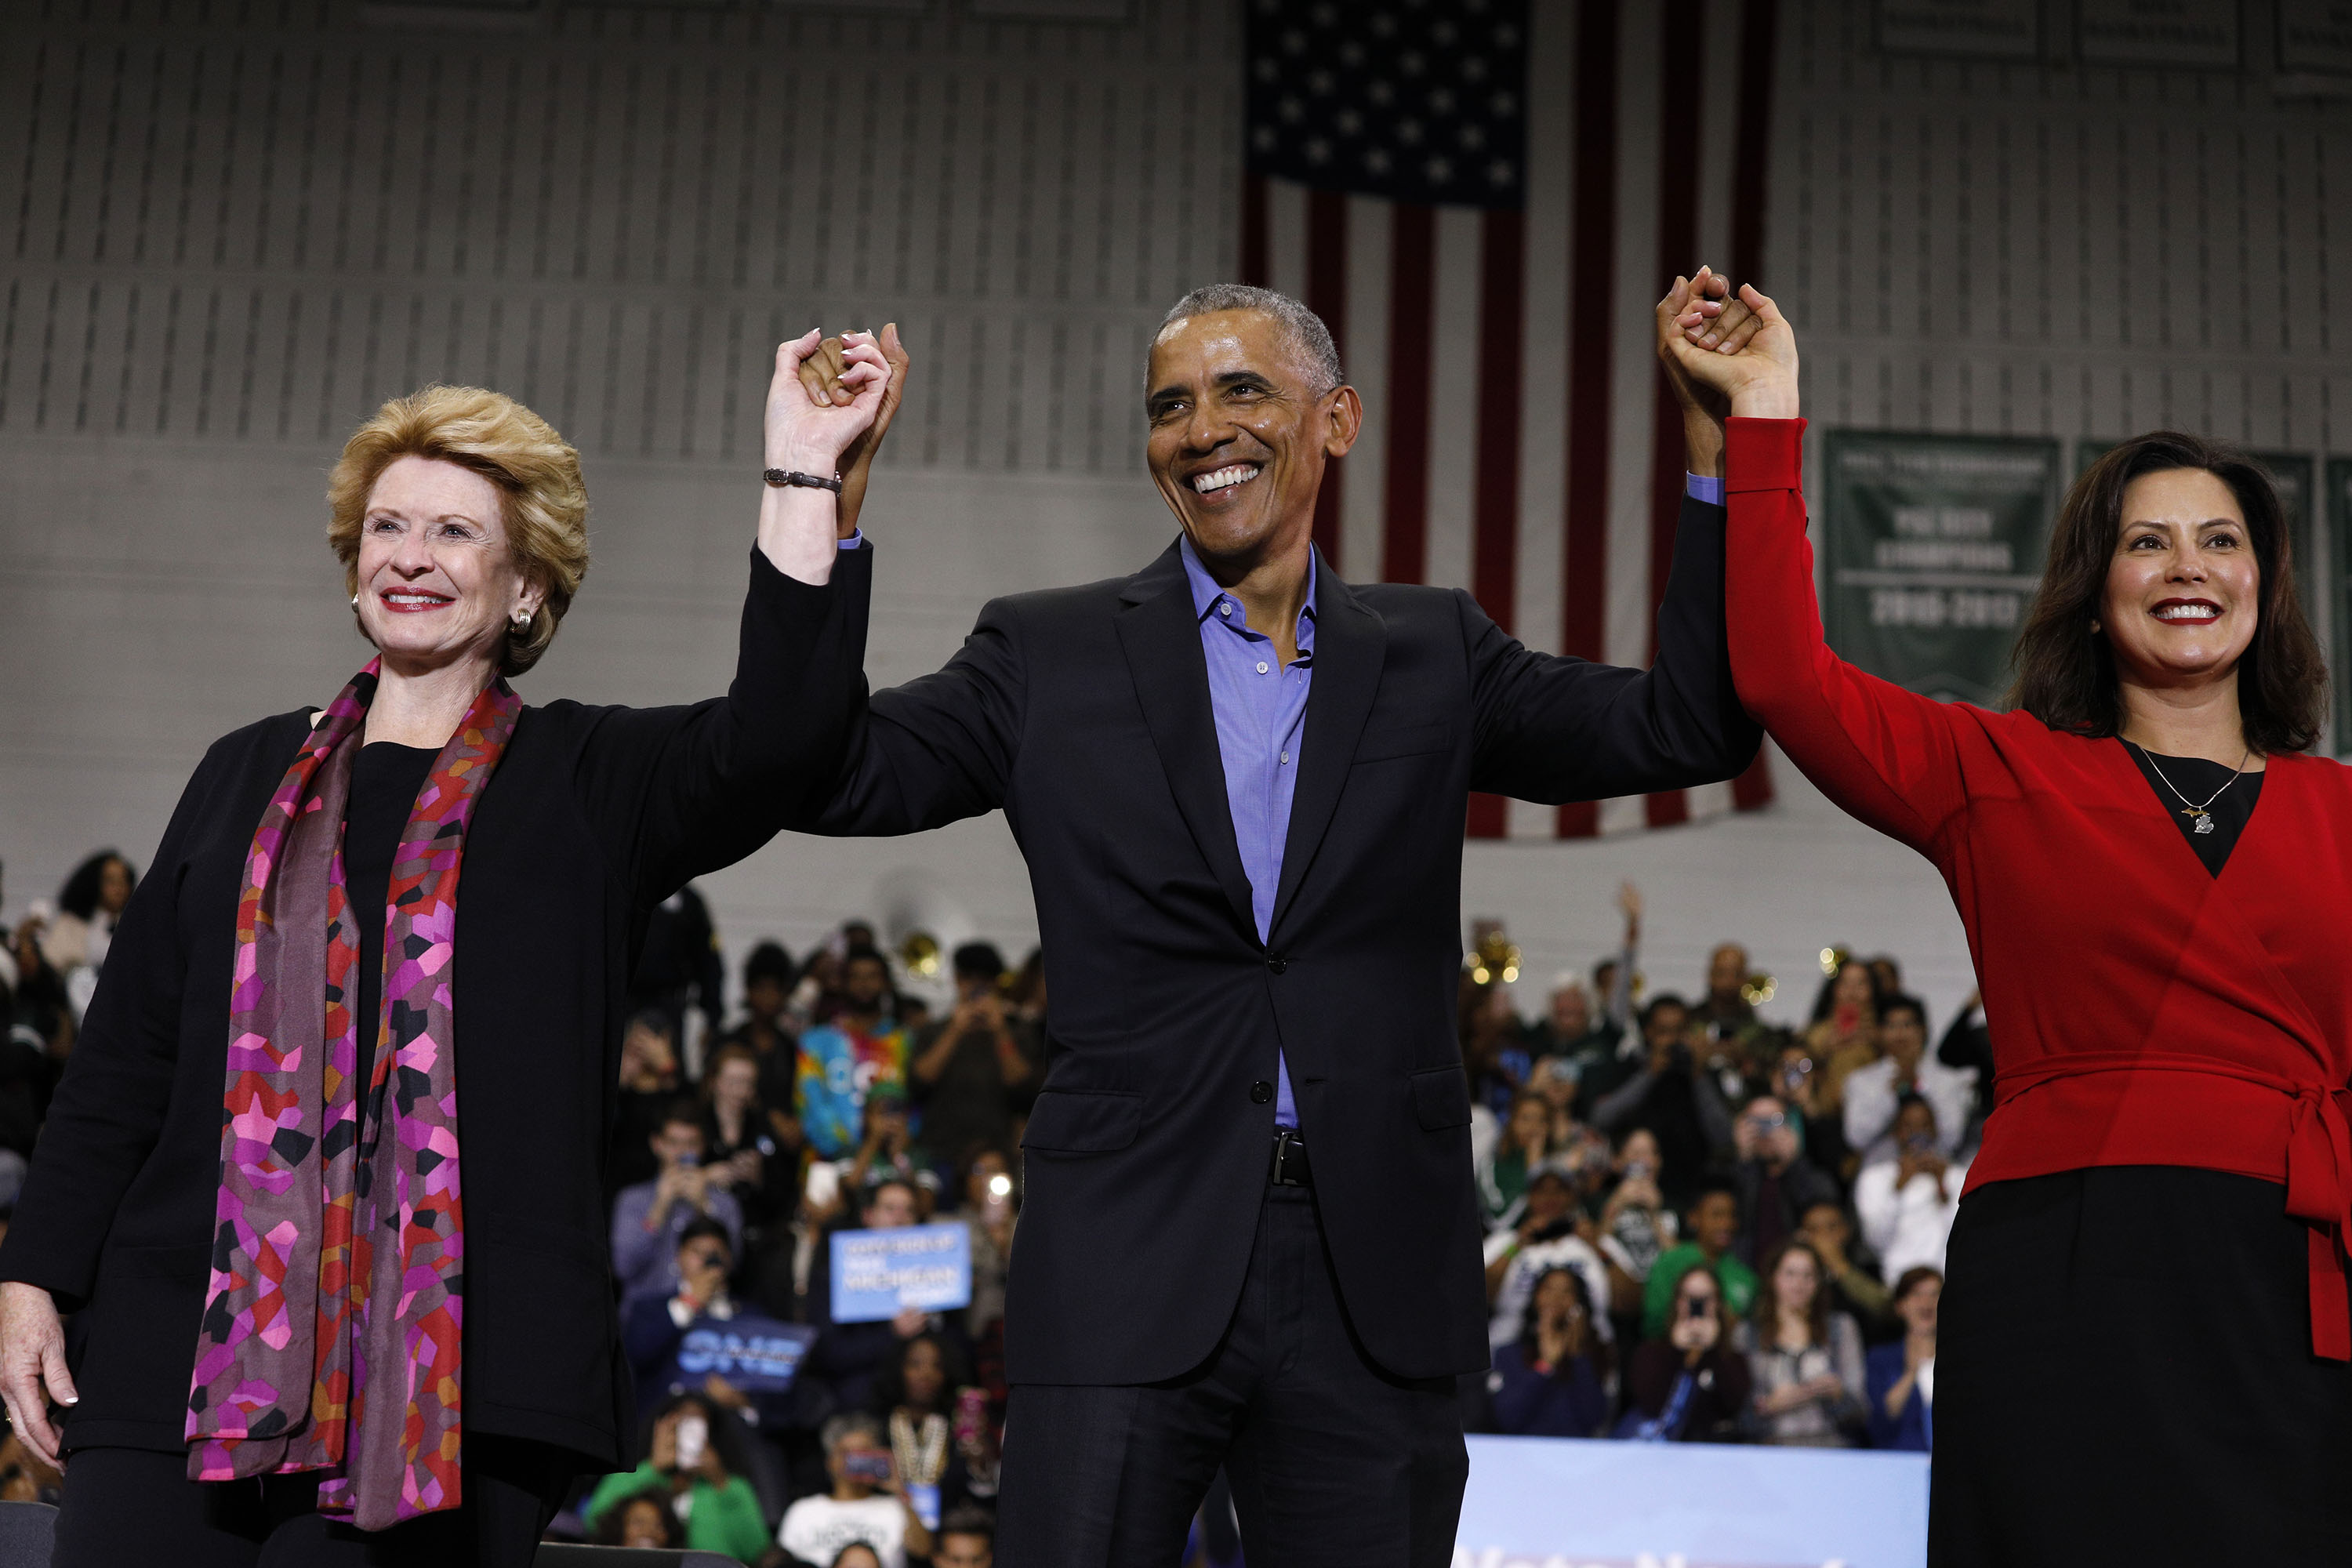 DETROIT, MI - OCTOBER 26: Former President Barack Obama raises his arms with Michigan Senator Debbie Stabenow (L) and Michigan gubernatorial candidate Gretchen Whitmer (R) at a rally to support Michigan democratic candidates at Detroit Cass Tech High School on October 26, 2018 in Detroit, Michigan. Obama, and former Attorney General Eric Holder, who was also at the rally, are among approximately a dozen democrats who were targeted by mail bombs over the past several days. (Photo by Bill Pugliano/Getty Images)